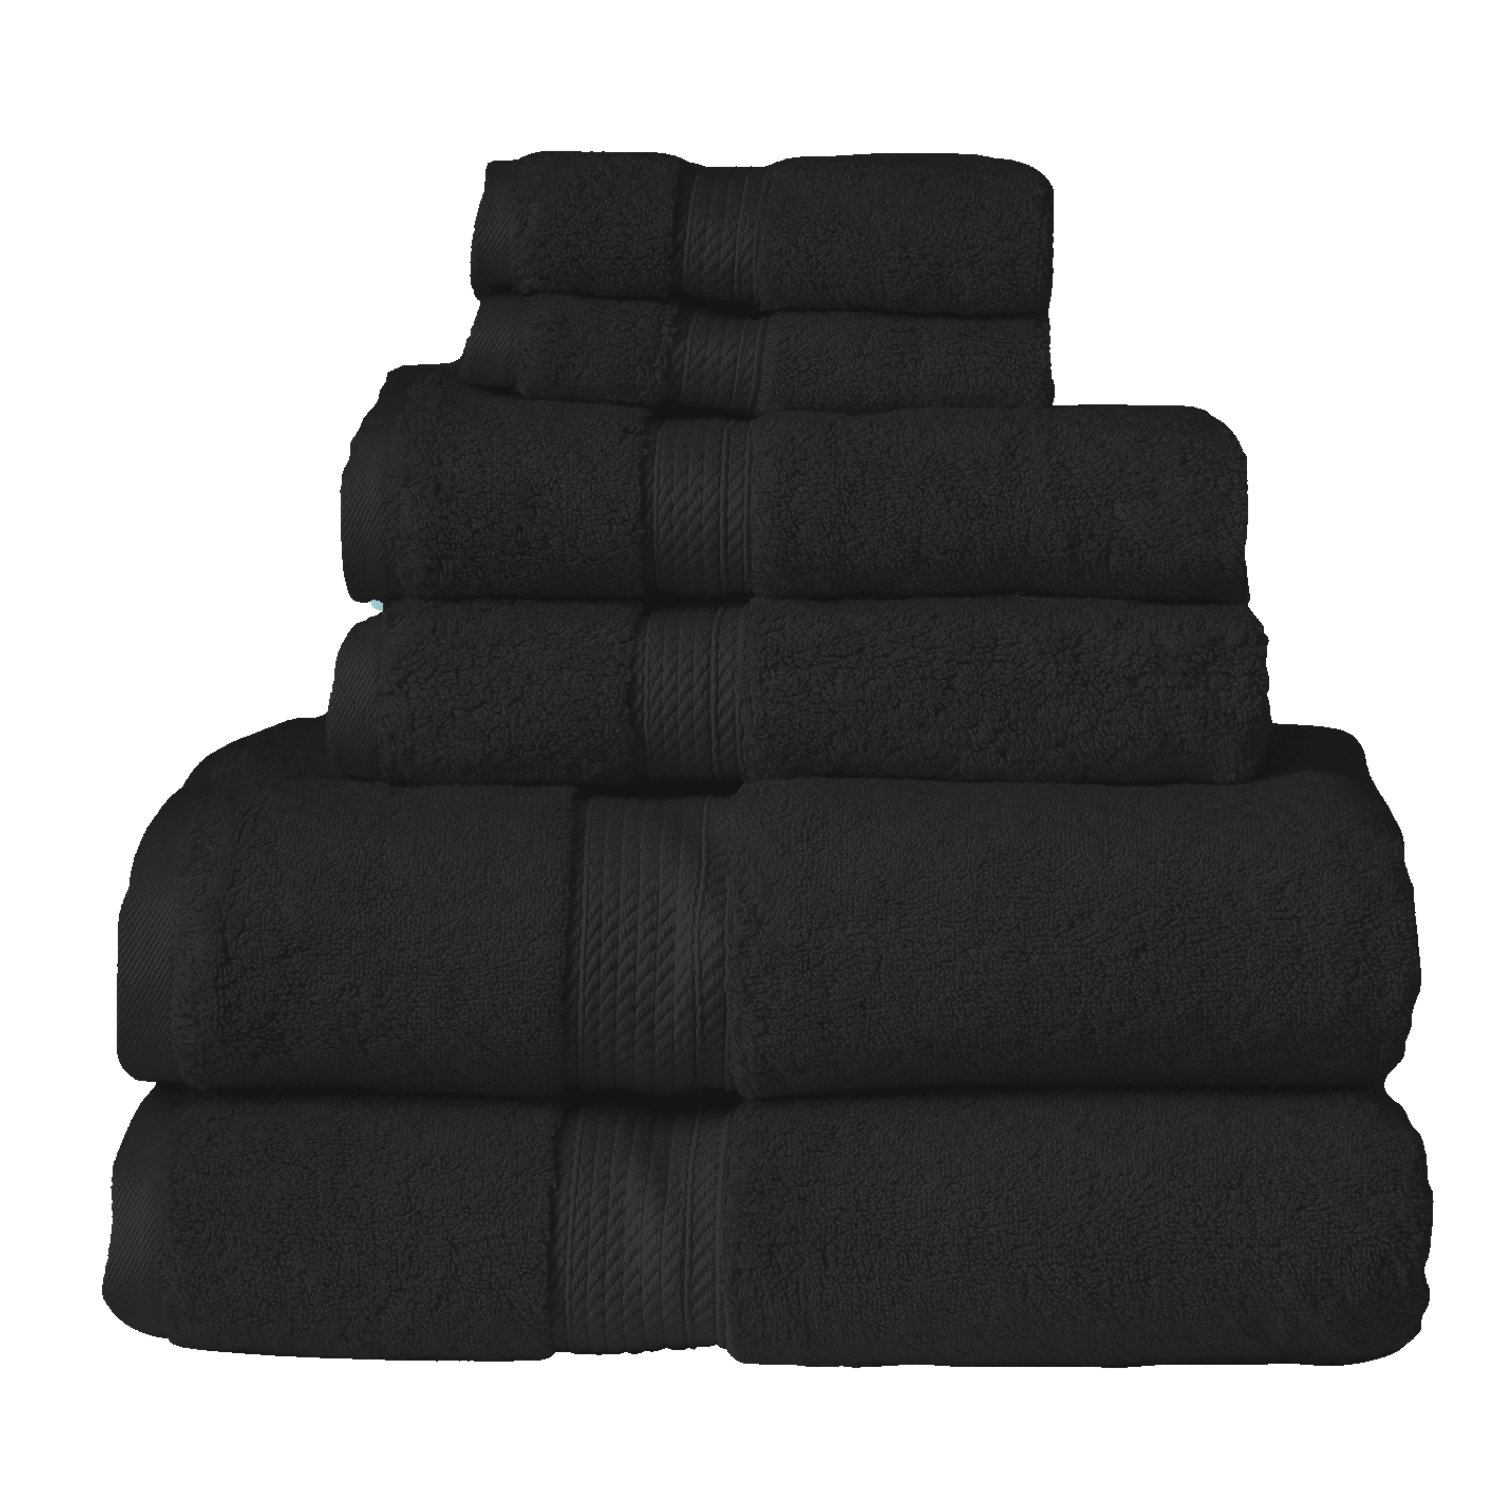 Blue Nile Mills 6-Piece Towel Set, Premium Long-Staple Cotton, 900 GSM, Black